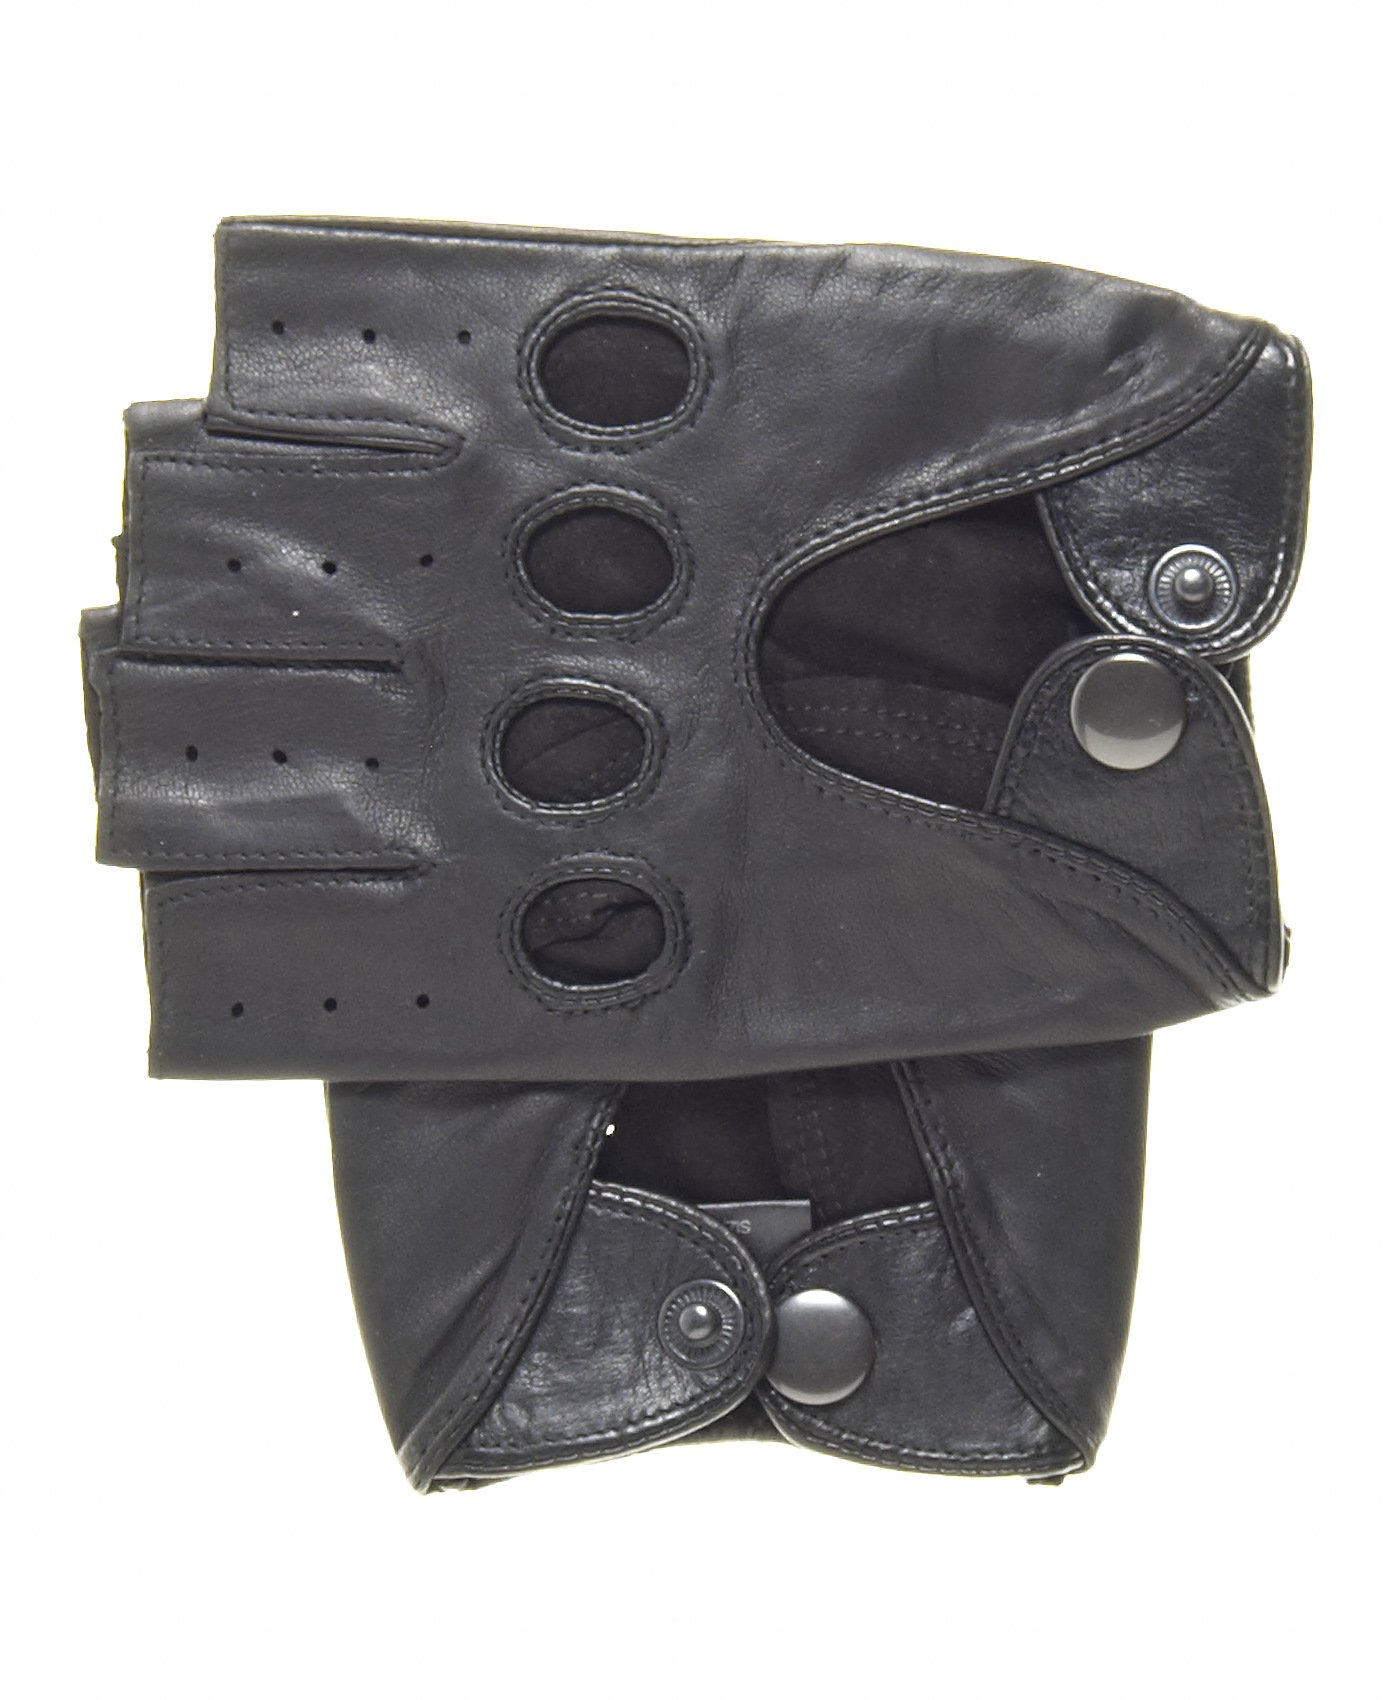 Pratt and Hart Men's Shorty Leather Driving Gloves (Fingerless) Size L Color Black